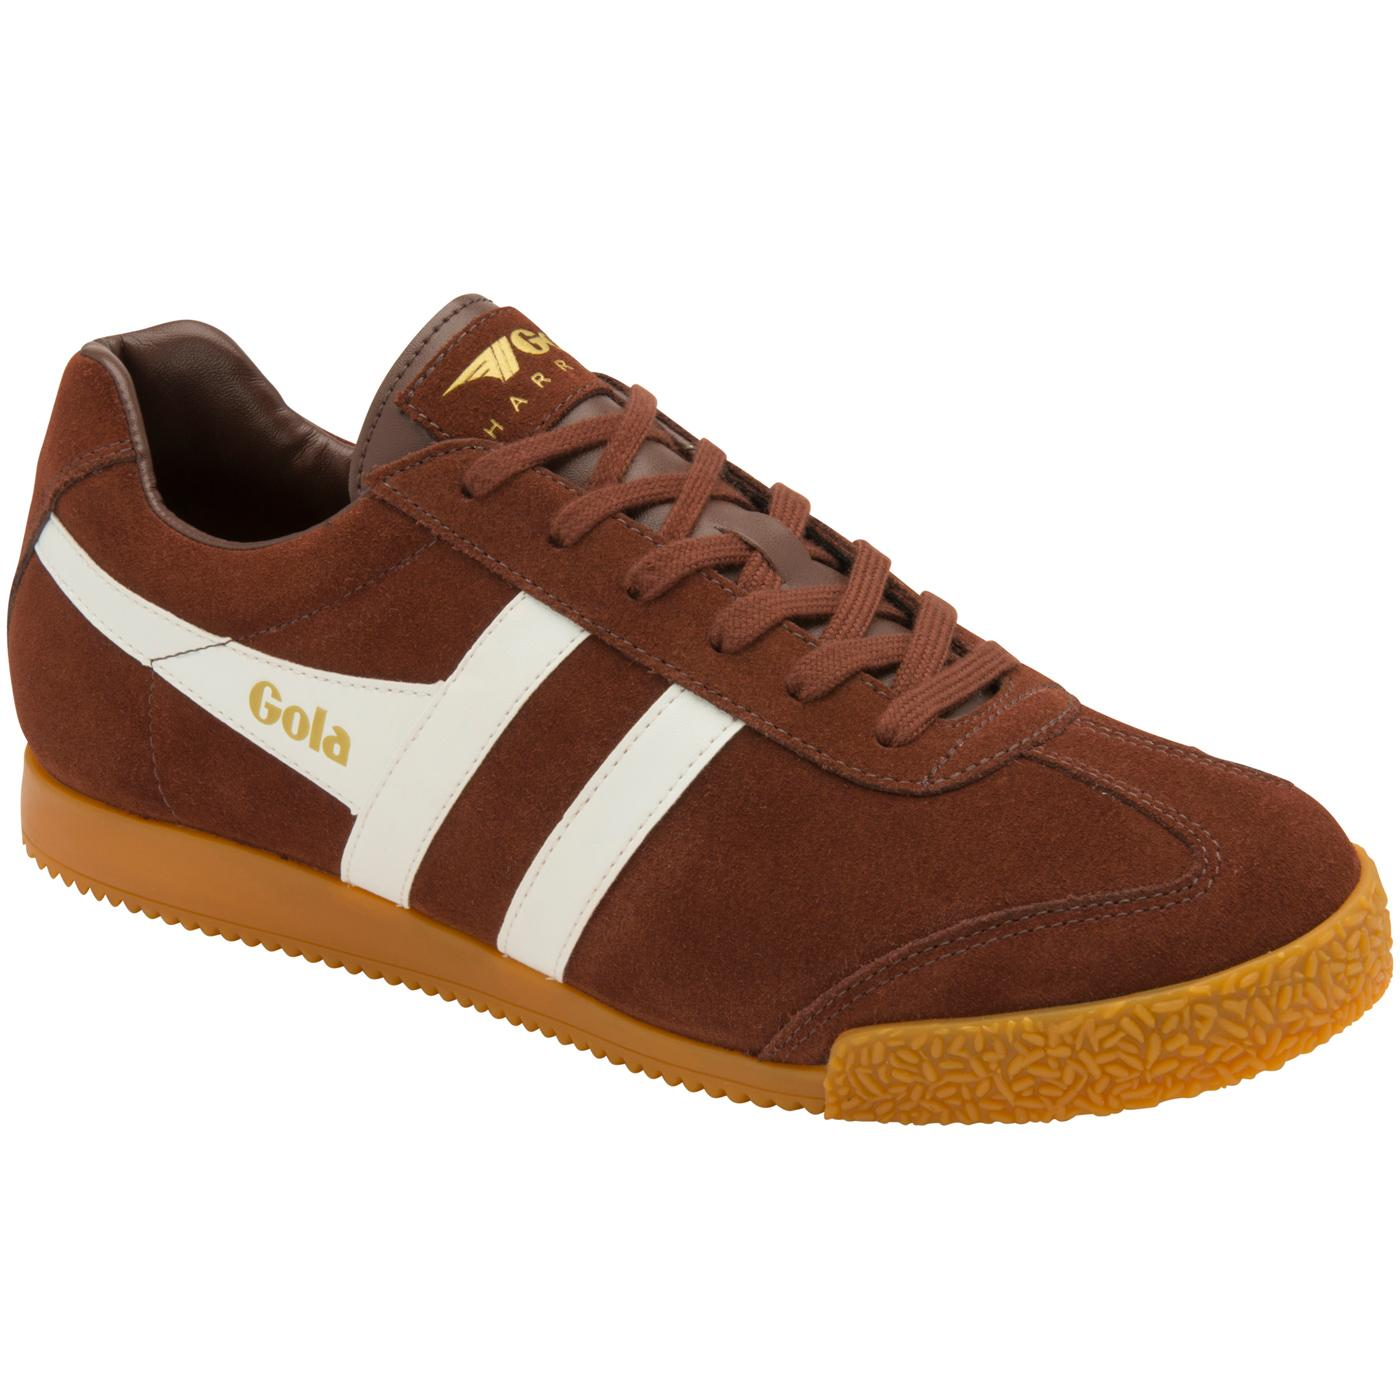 GOLA Harrier Suede Mens Retro 70s Trainers COGNAC